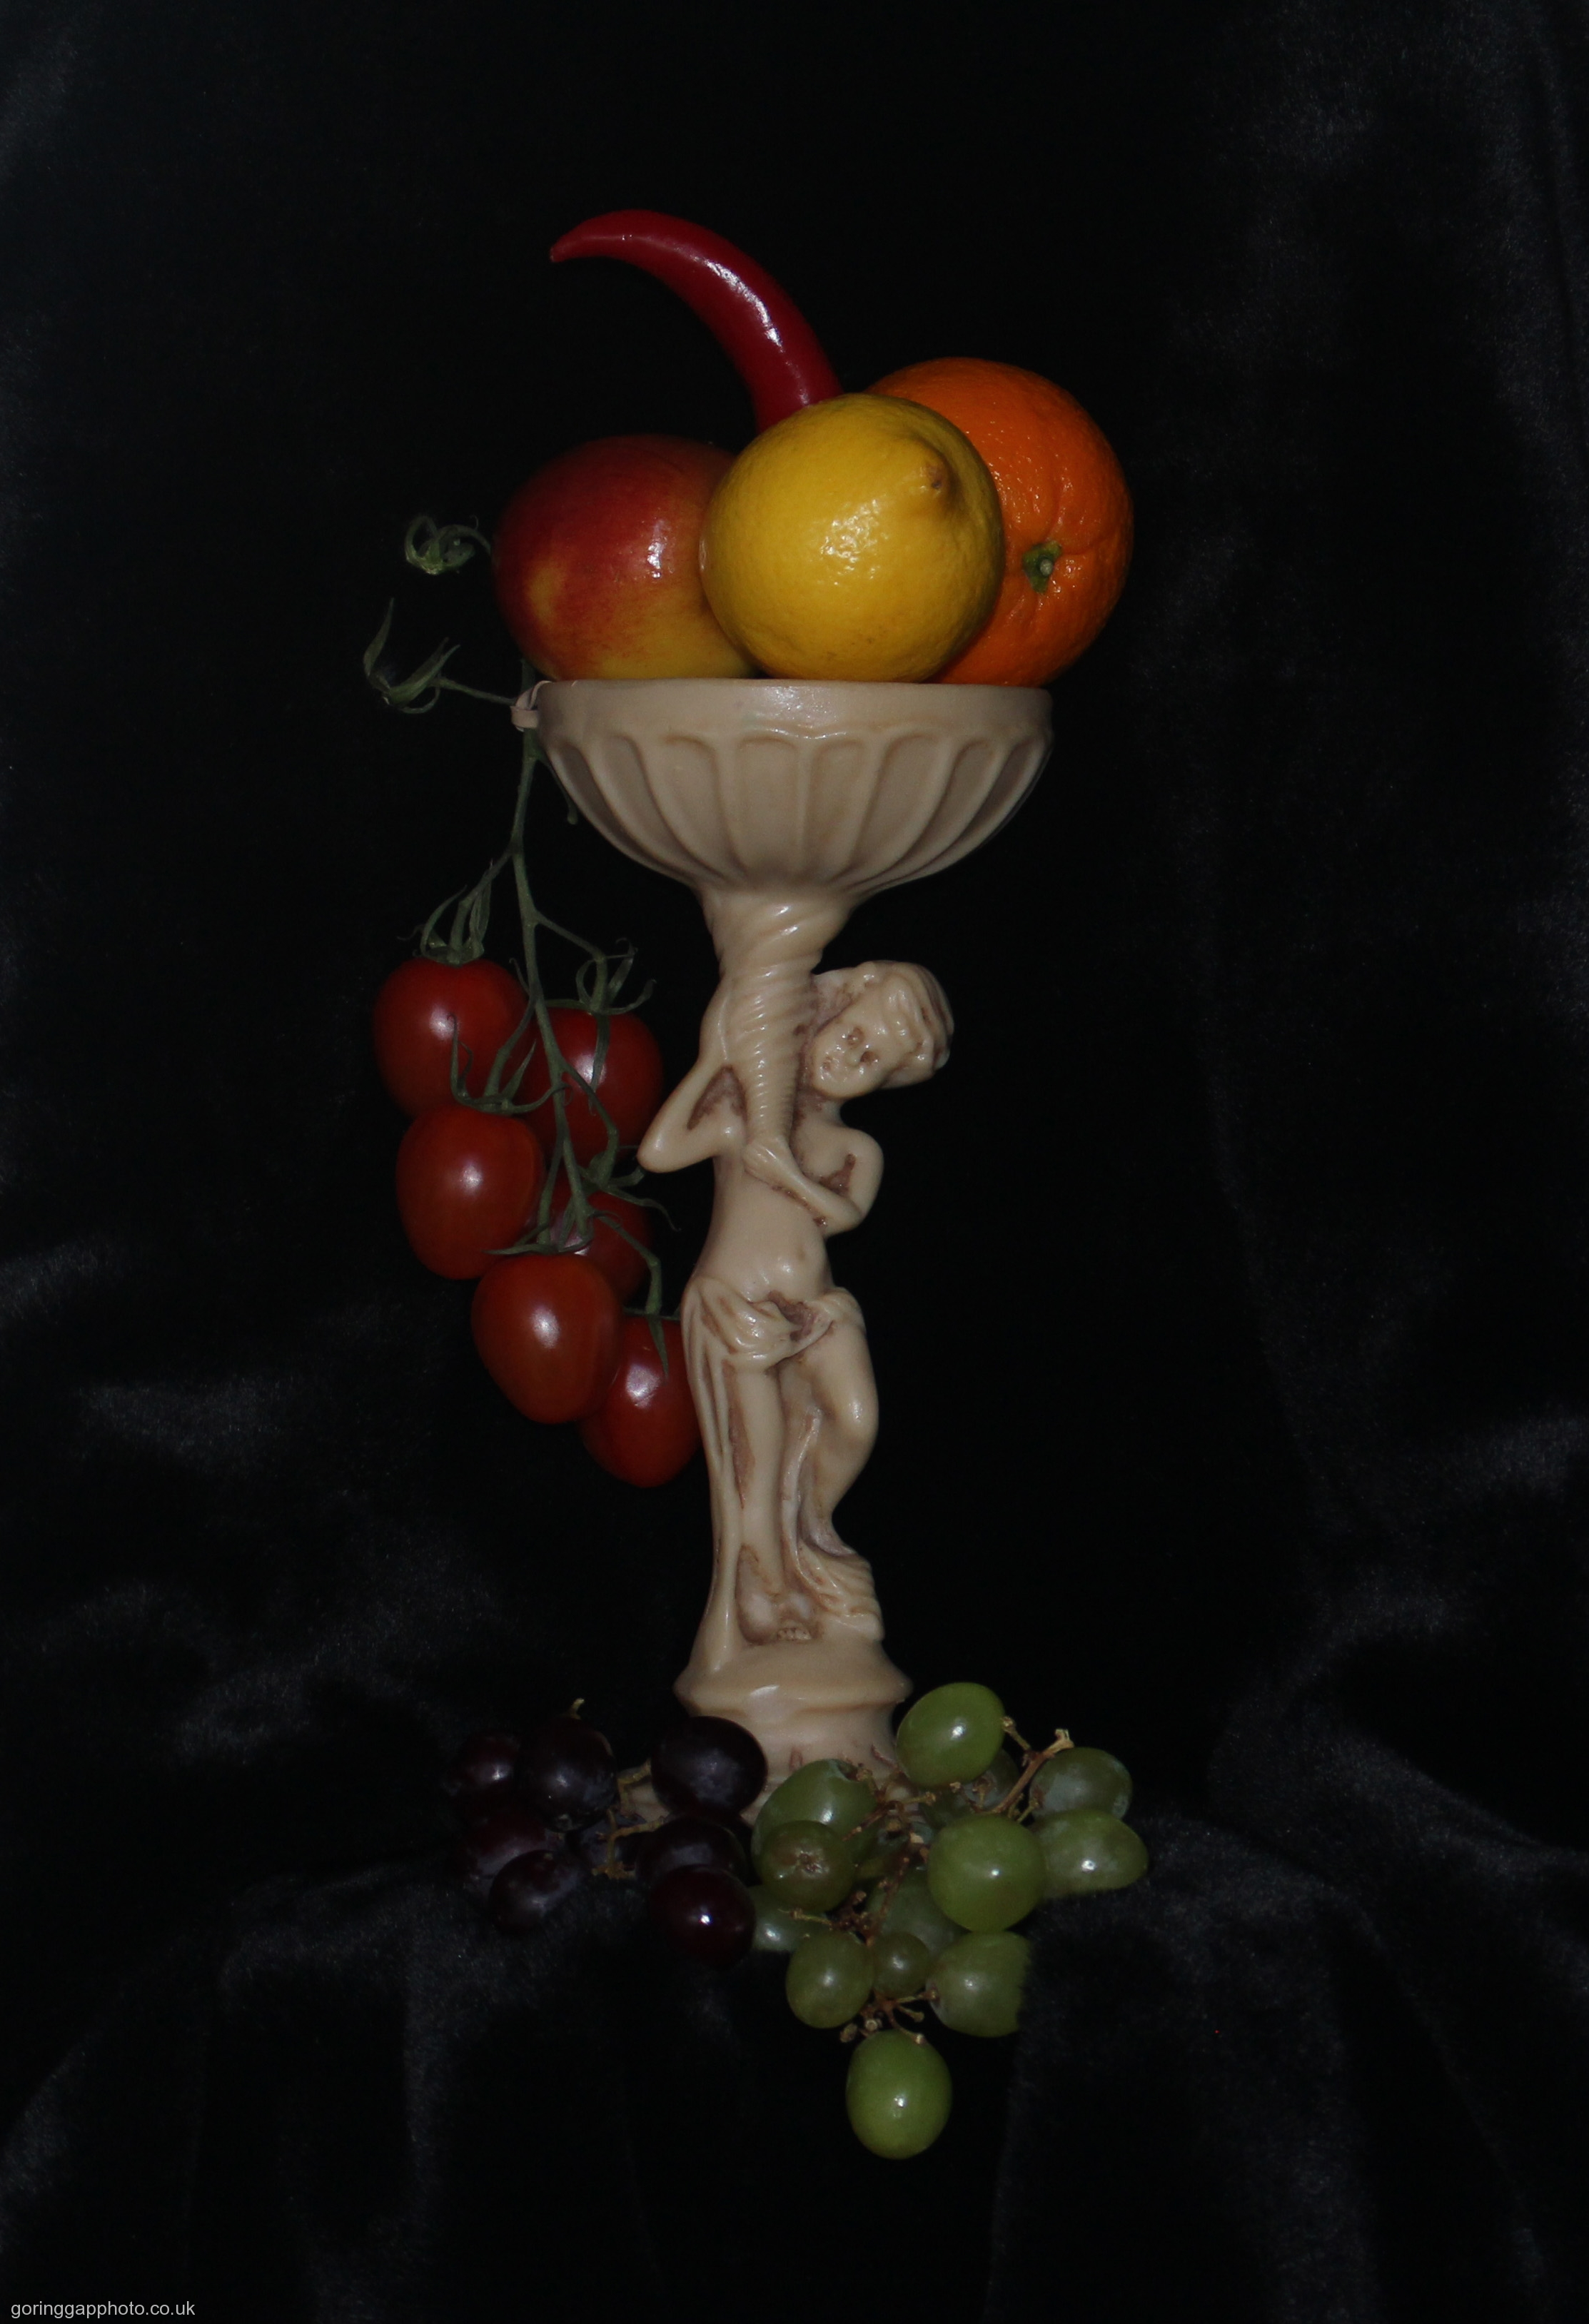 FOOD OF THE GODS by June Cryer